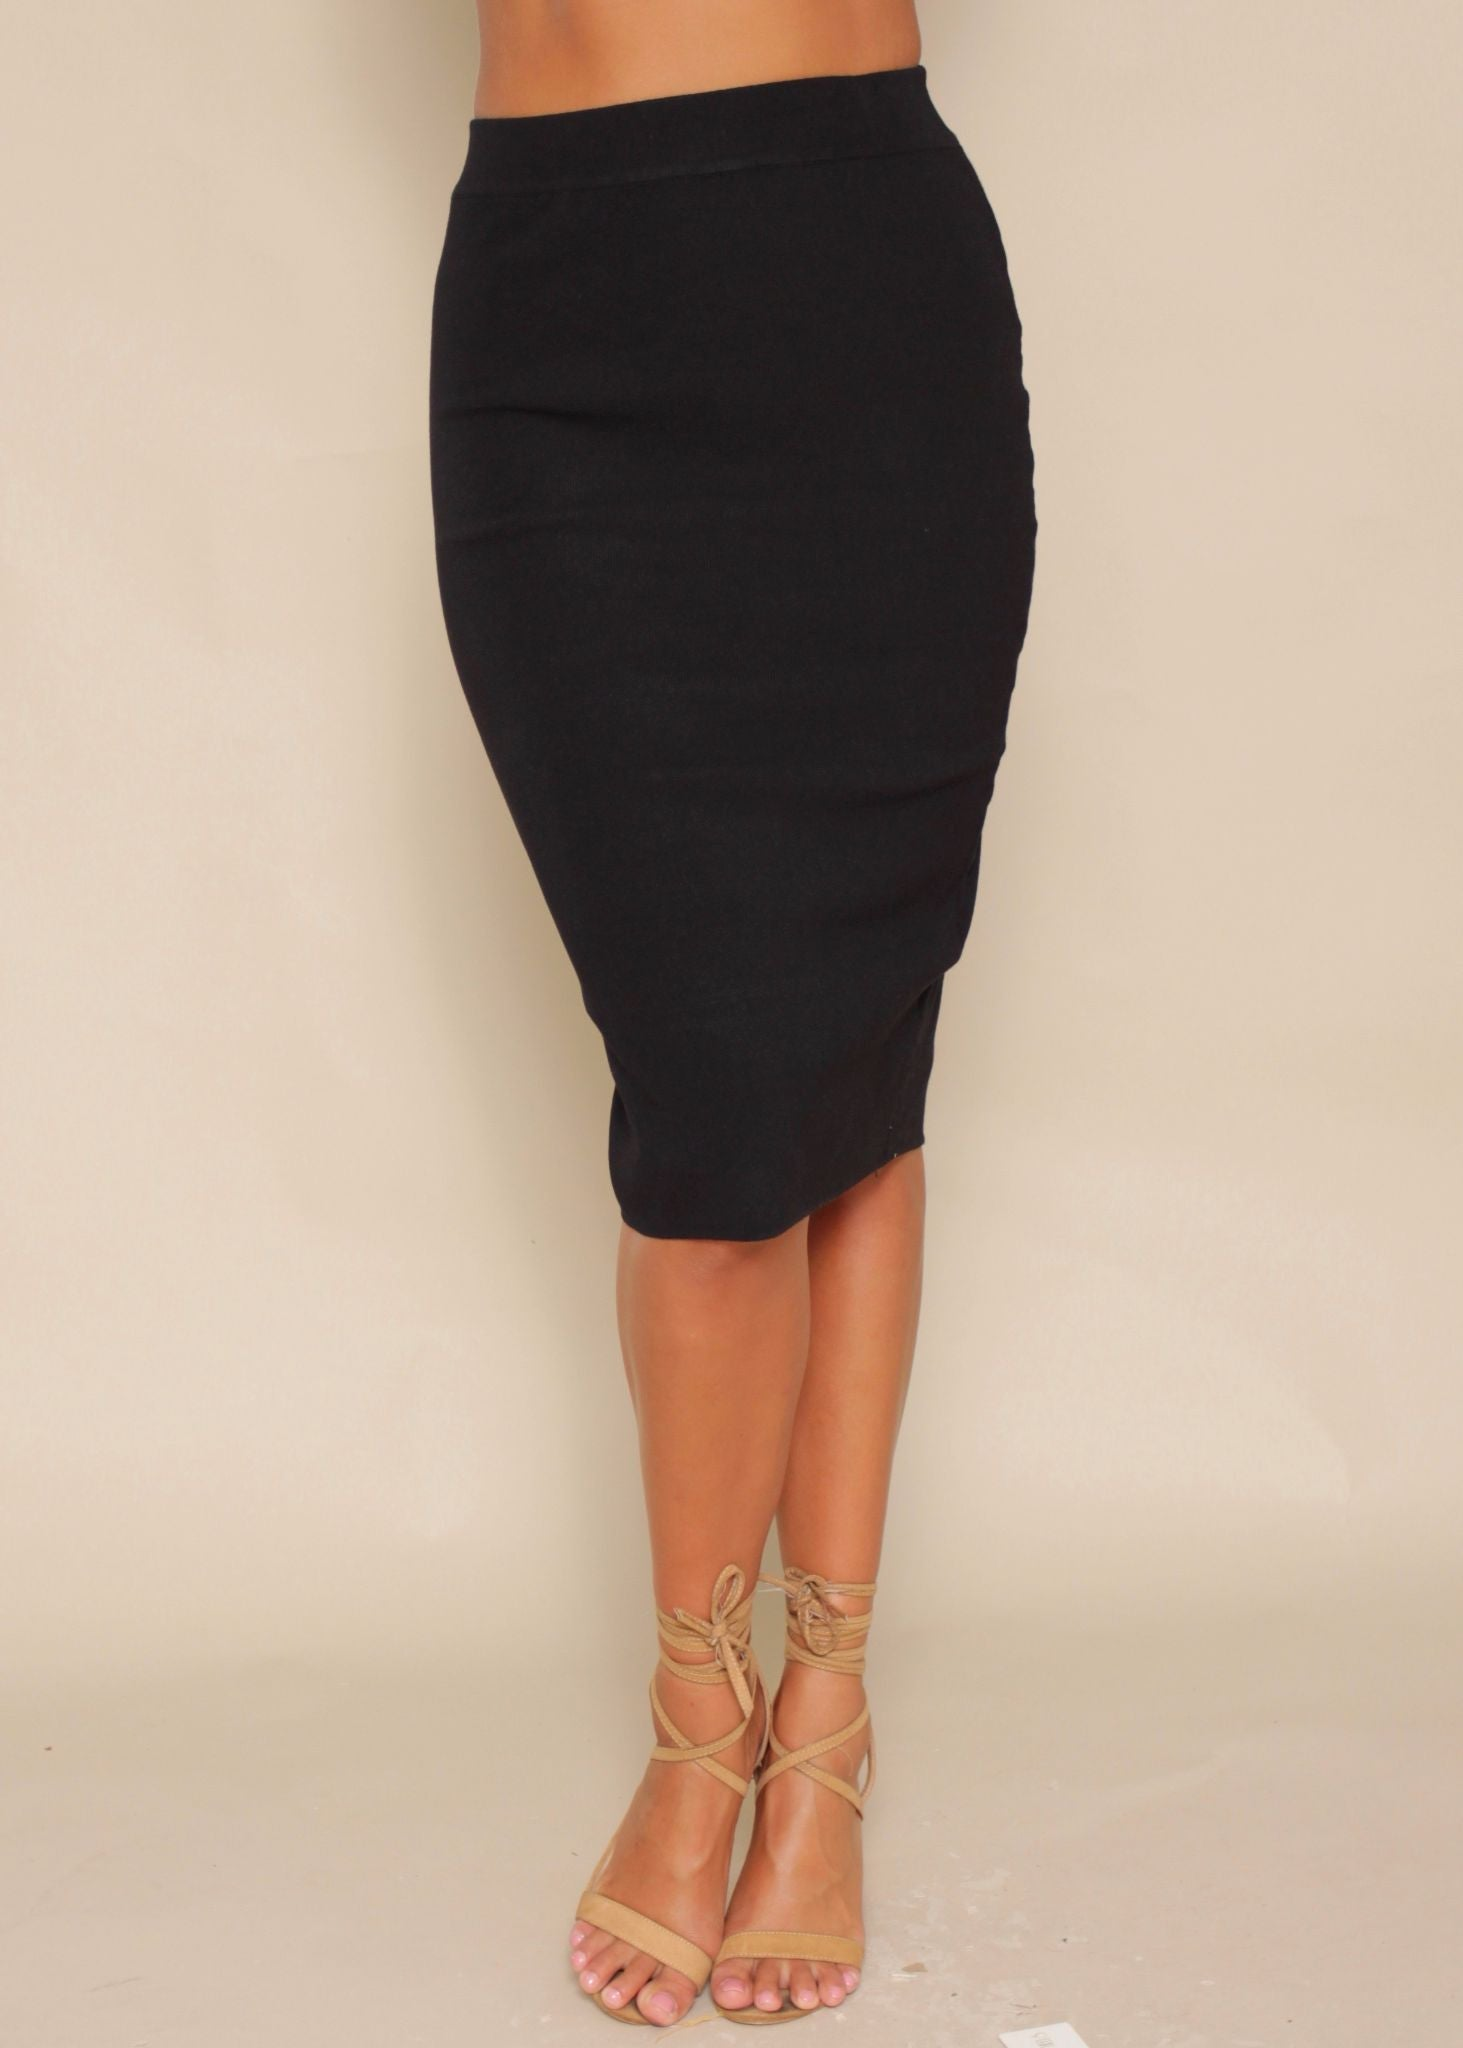 Mile High Skirt - Black